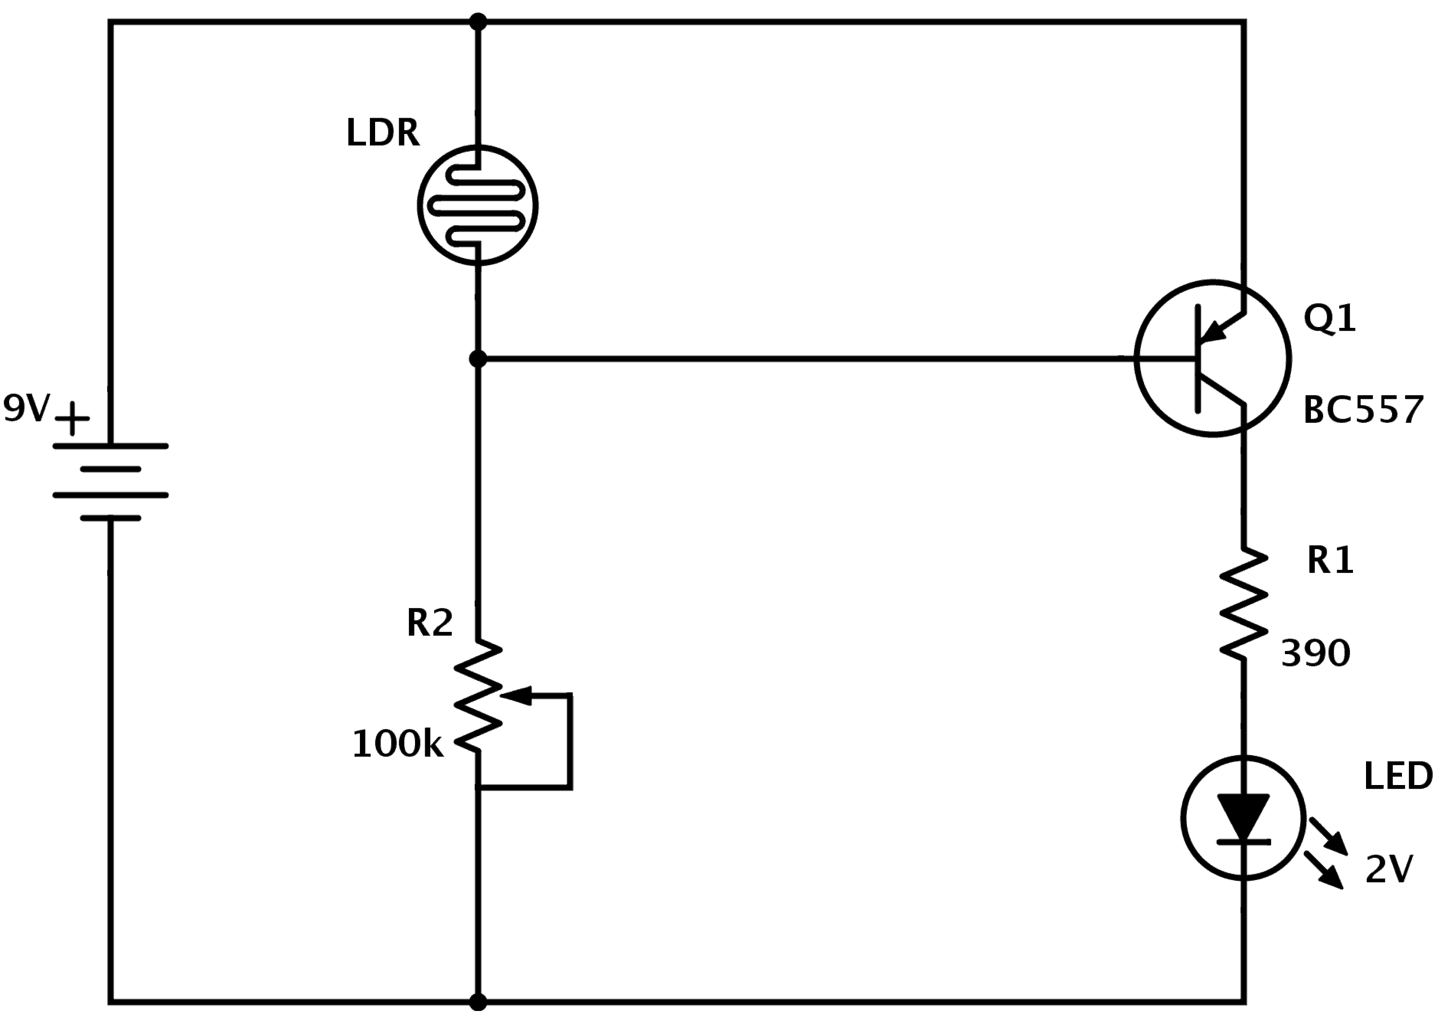 Ldr Circuit Diagram Build Electronic Circuits Pulse Generator Shown In The Schematic Below Produces With Pnp Transistor Dark Detector